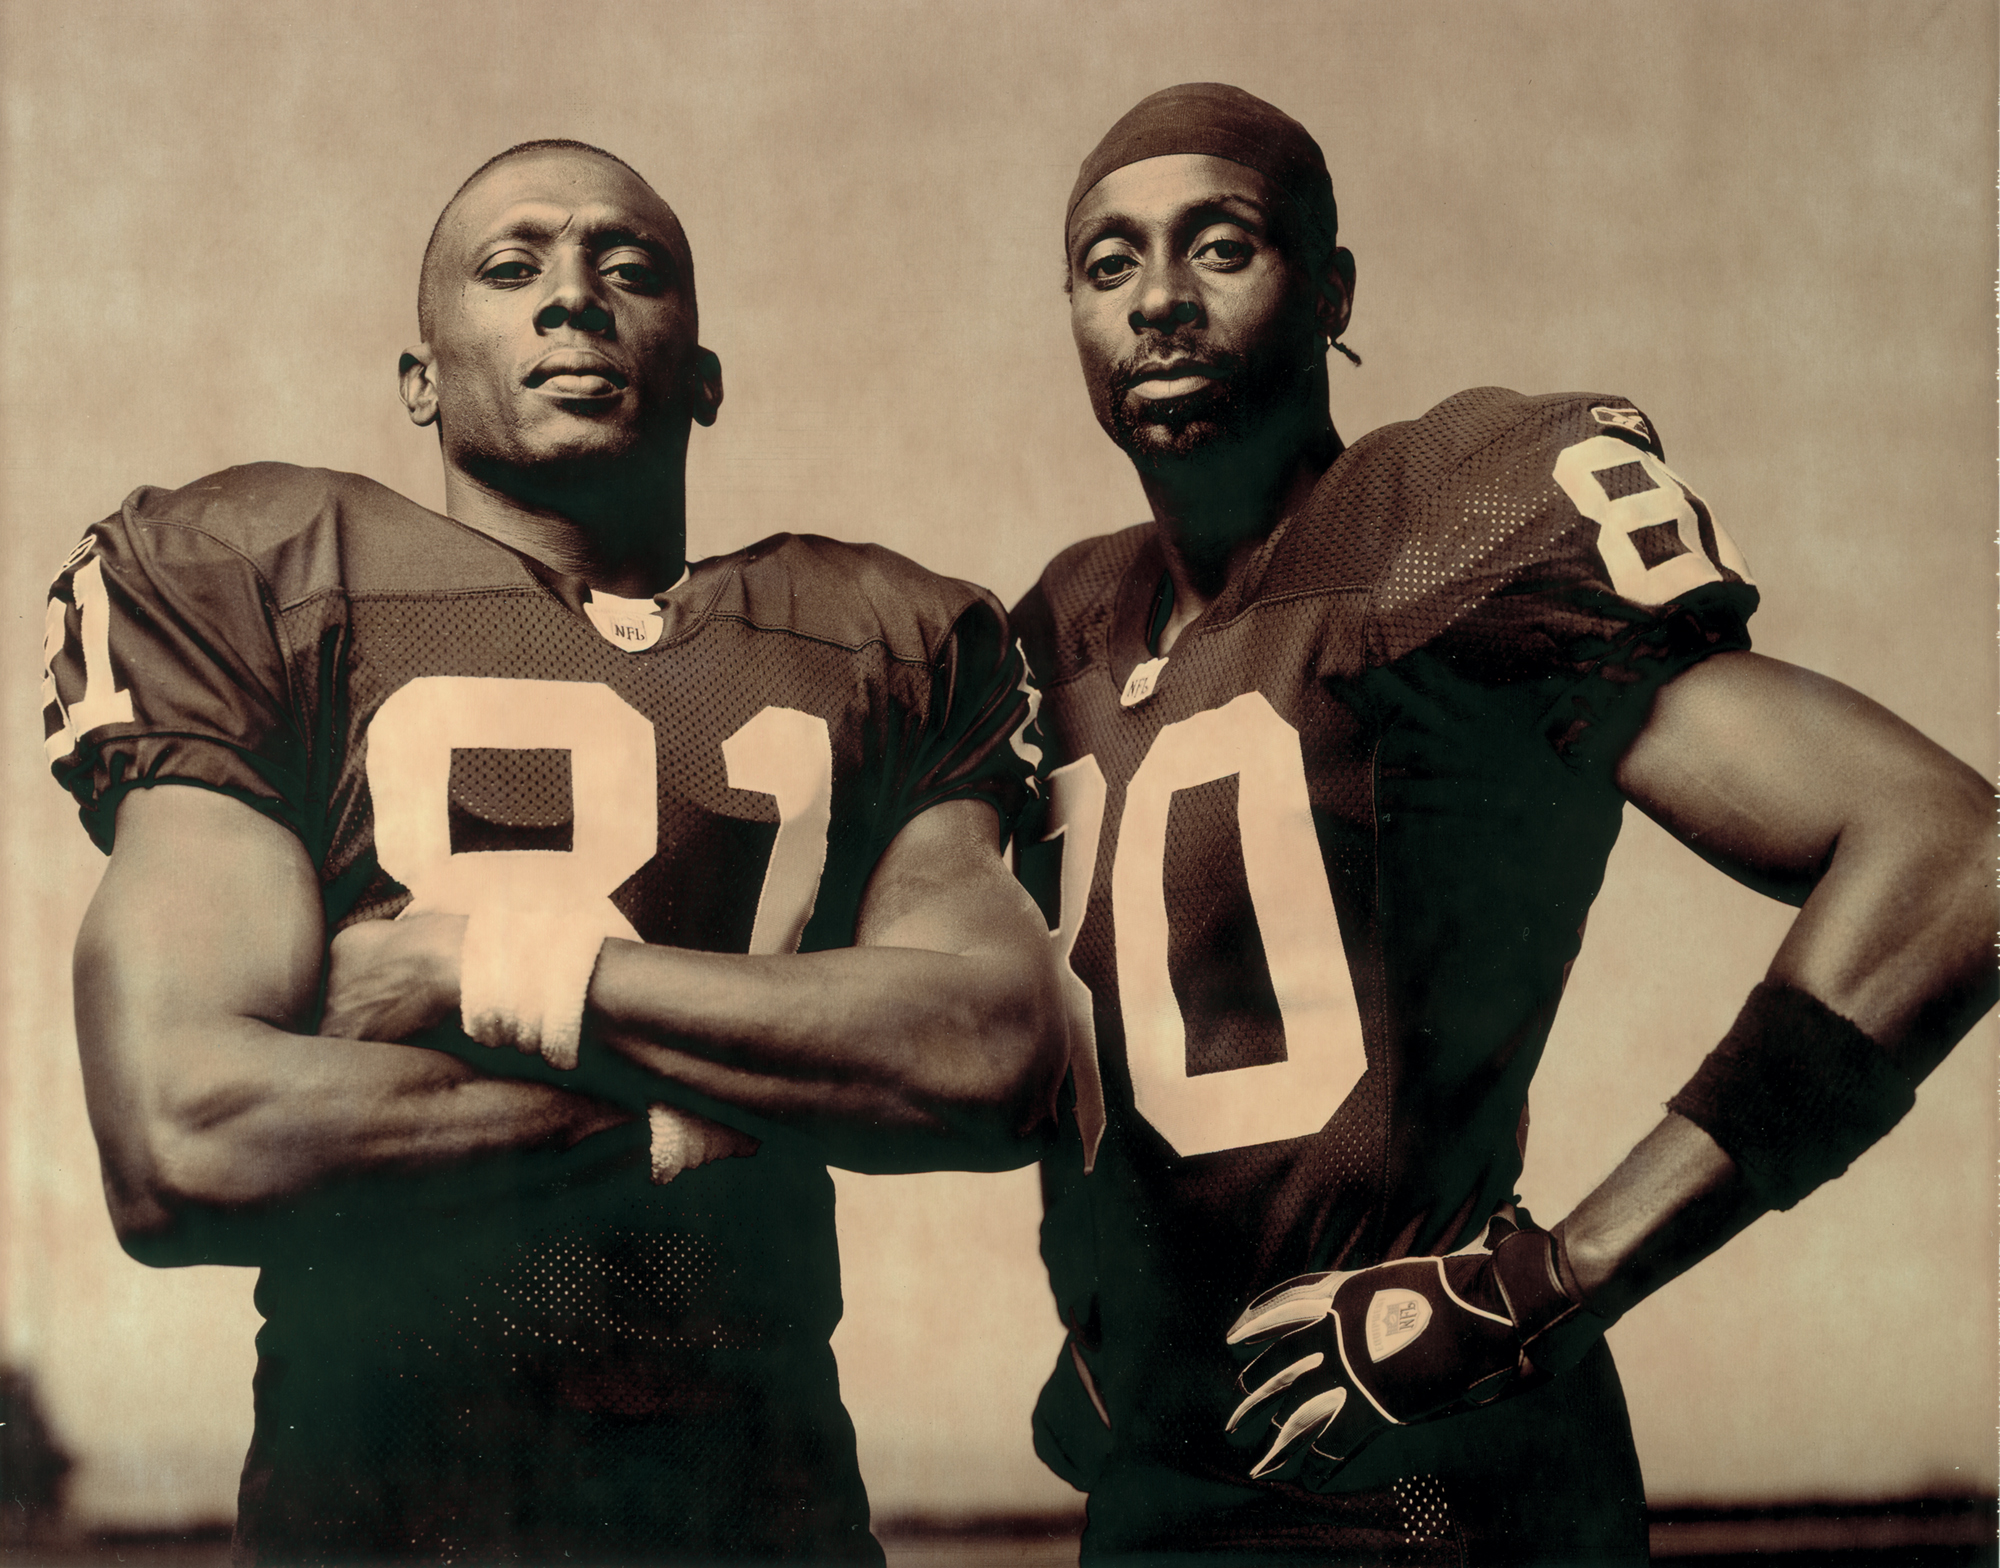 Tim Brown & Jerry Rice, 2002